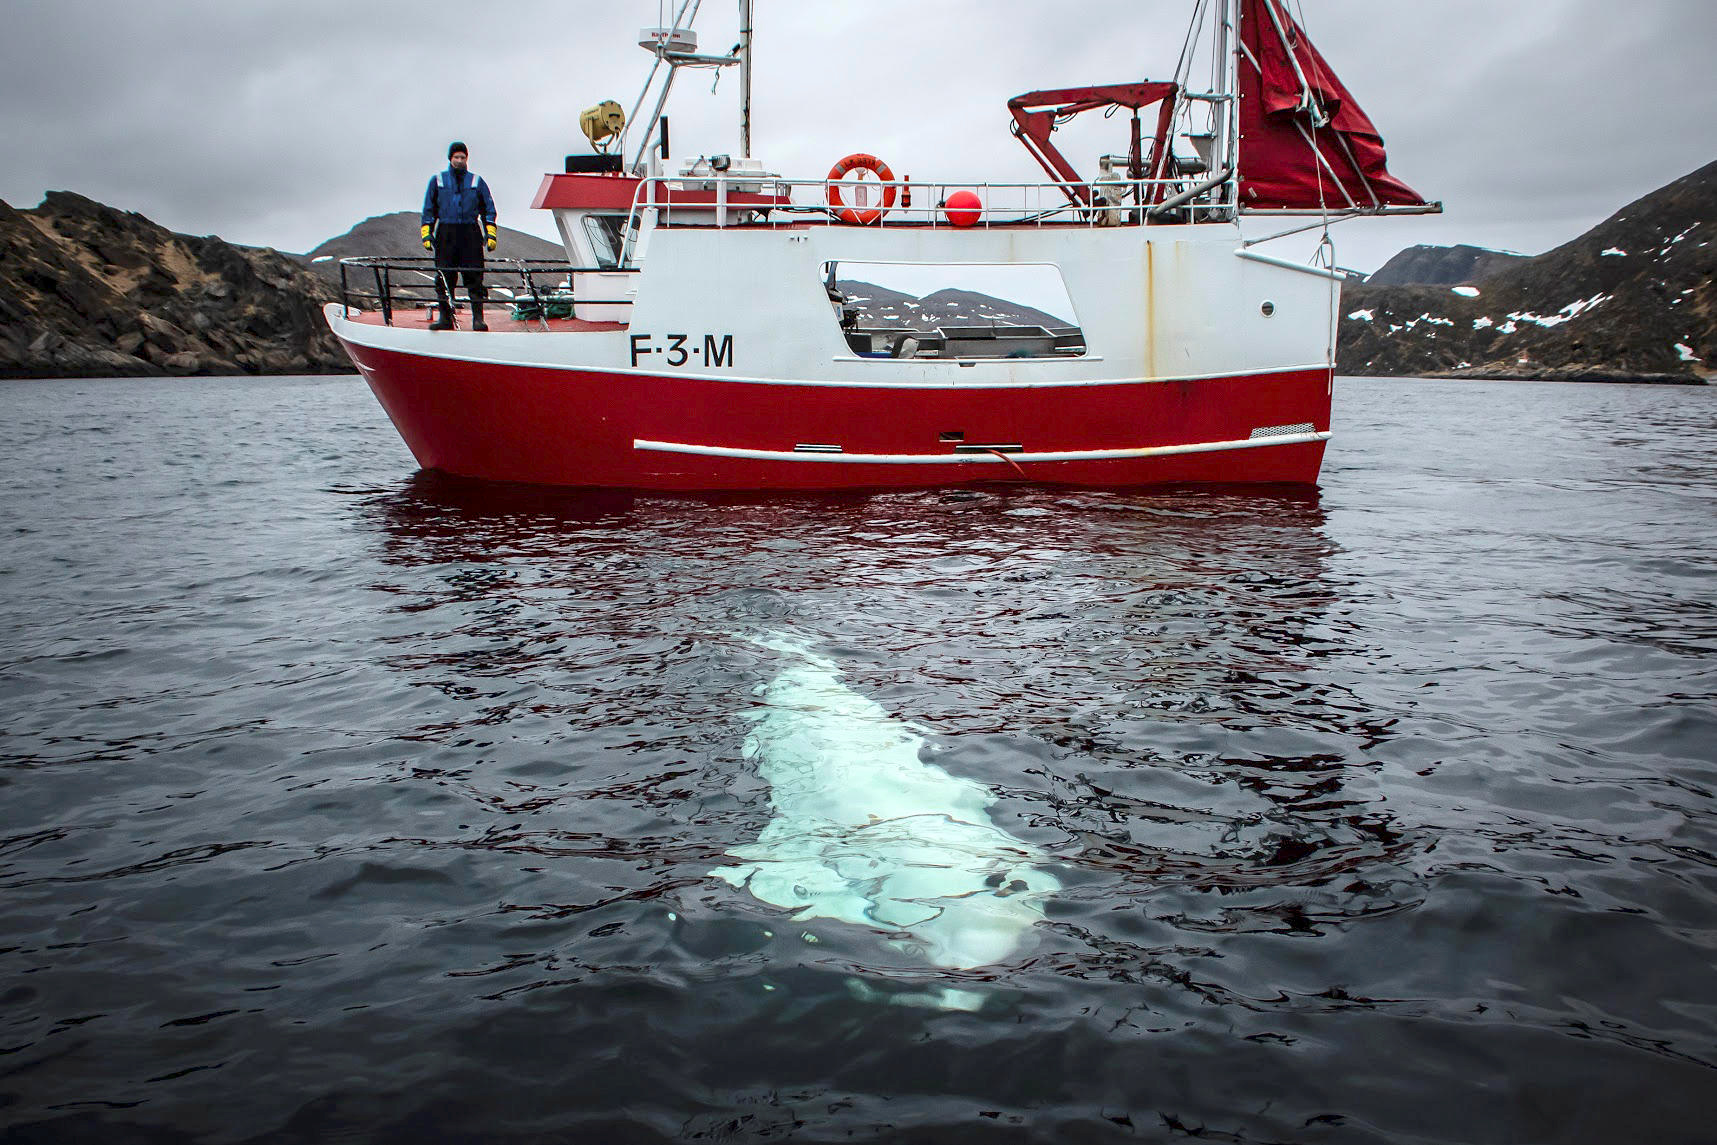 A white beluga whale wearing a harness is seen next to a fishing boat off the coast of northern Norway, April 29, 2019. Jorgen Ree Wiig/Sea Surveillance Service/Handout/NTB Scanpix via REUTERS